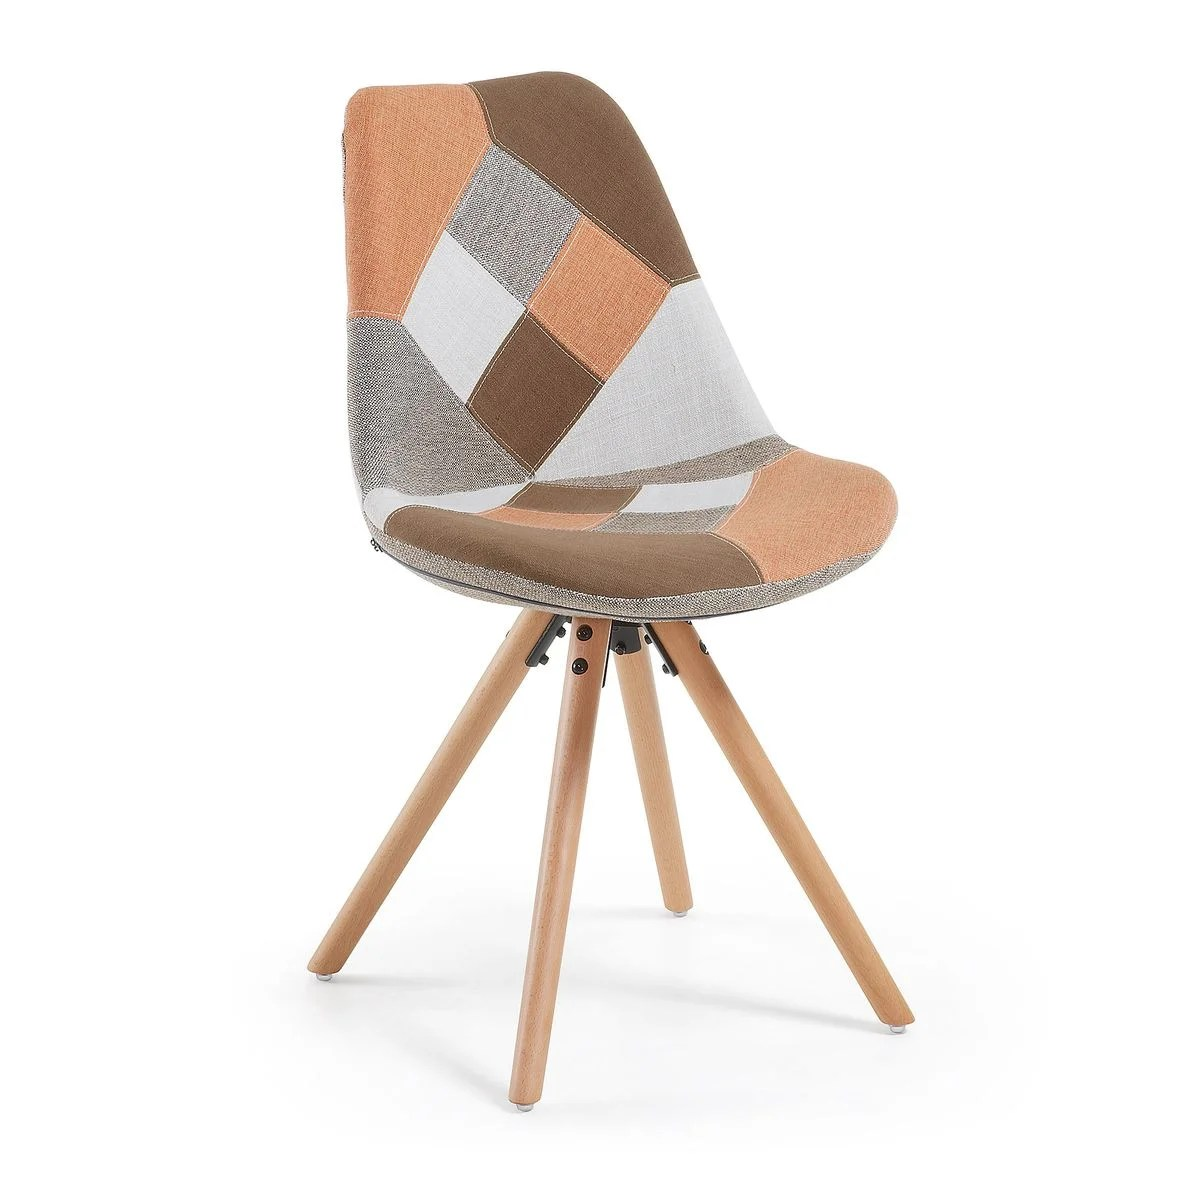 Chaise Ralf Chaise Ralf Patchwork Orange Naturel, Multicouleur Kave